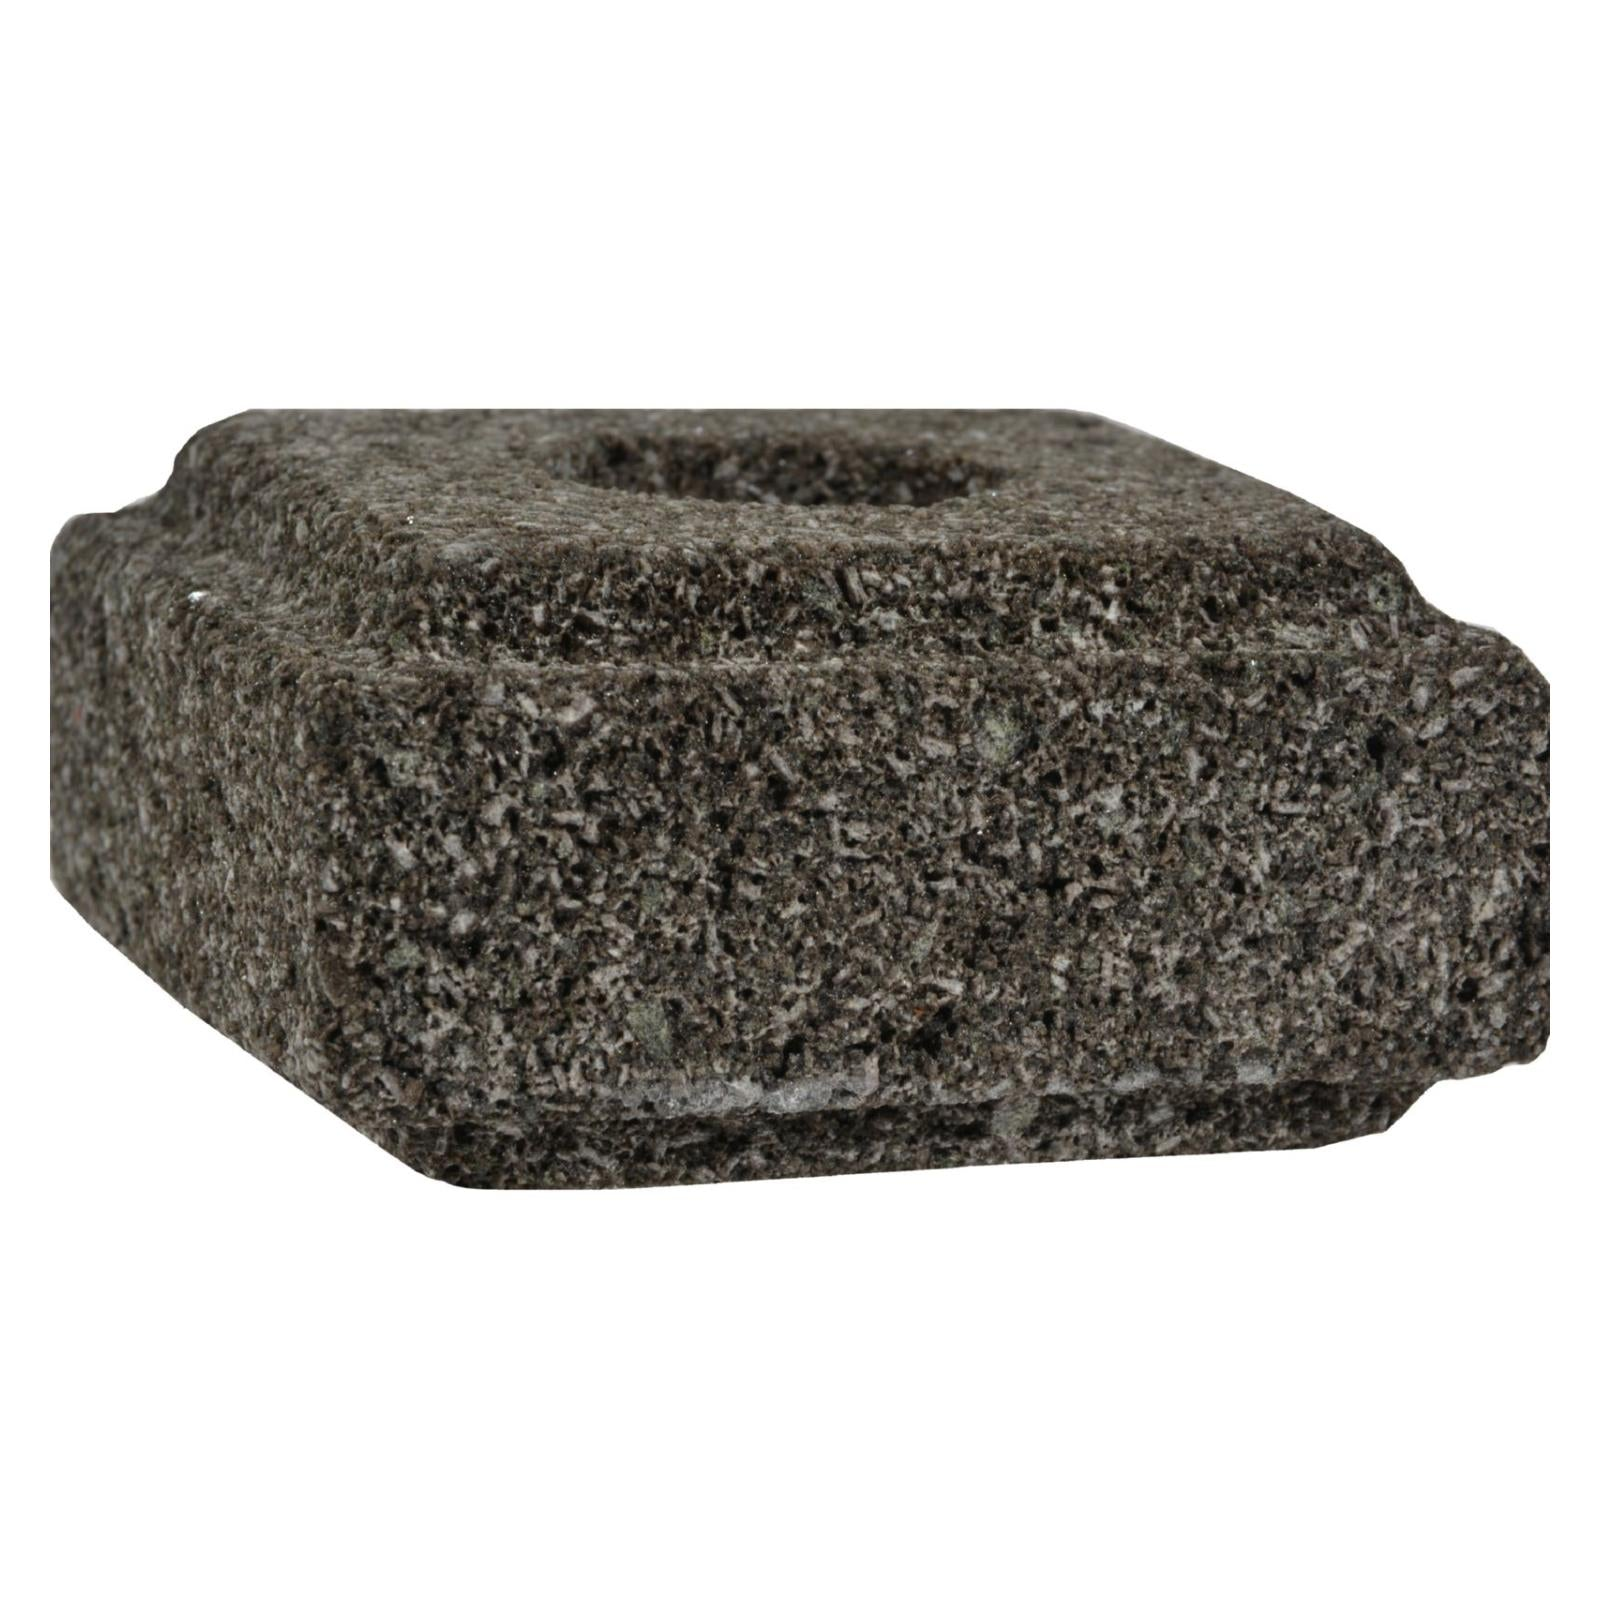 Buy Aloha Bay Taper Candle Holder Lava Stone - 1 Candle Holder - Candle Accessories from Veroeco.com